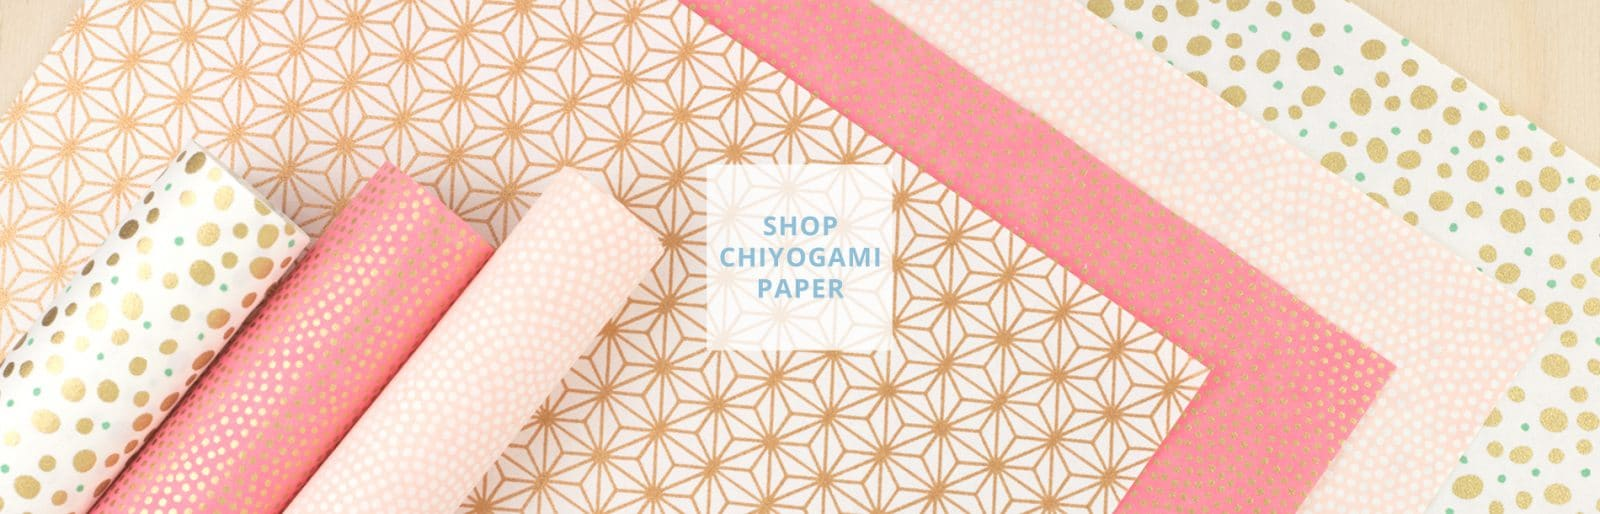 Japanese Chiyogami paper in pink peach colours